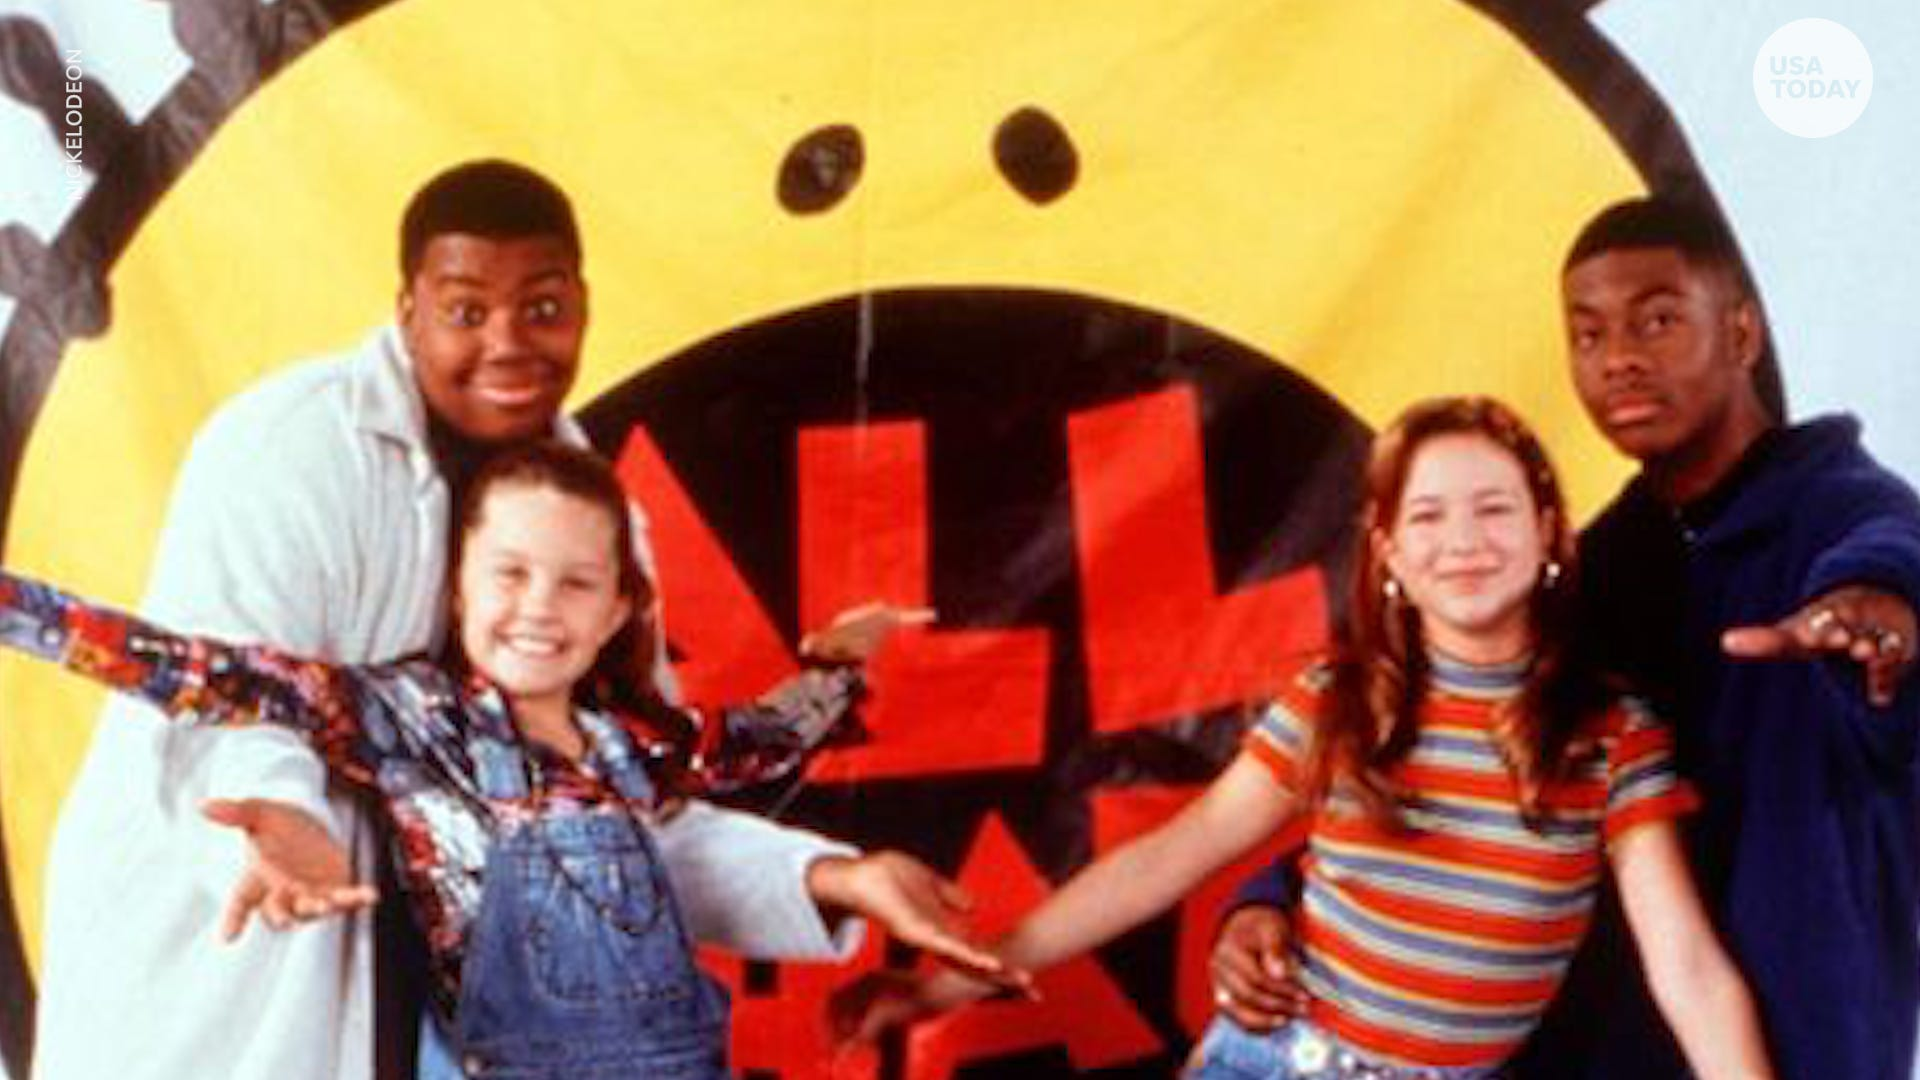 'All That' is coming back to Nickelodeon